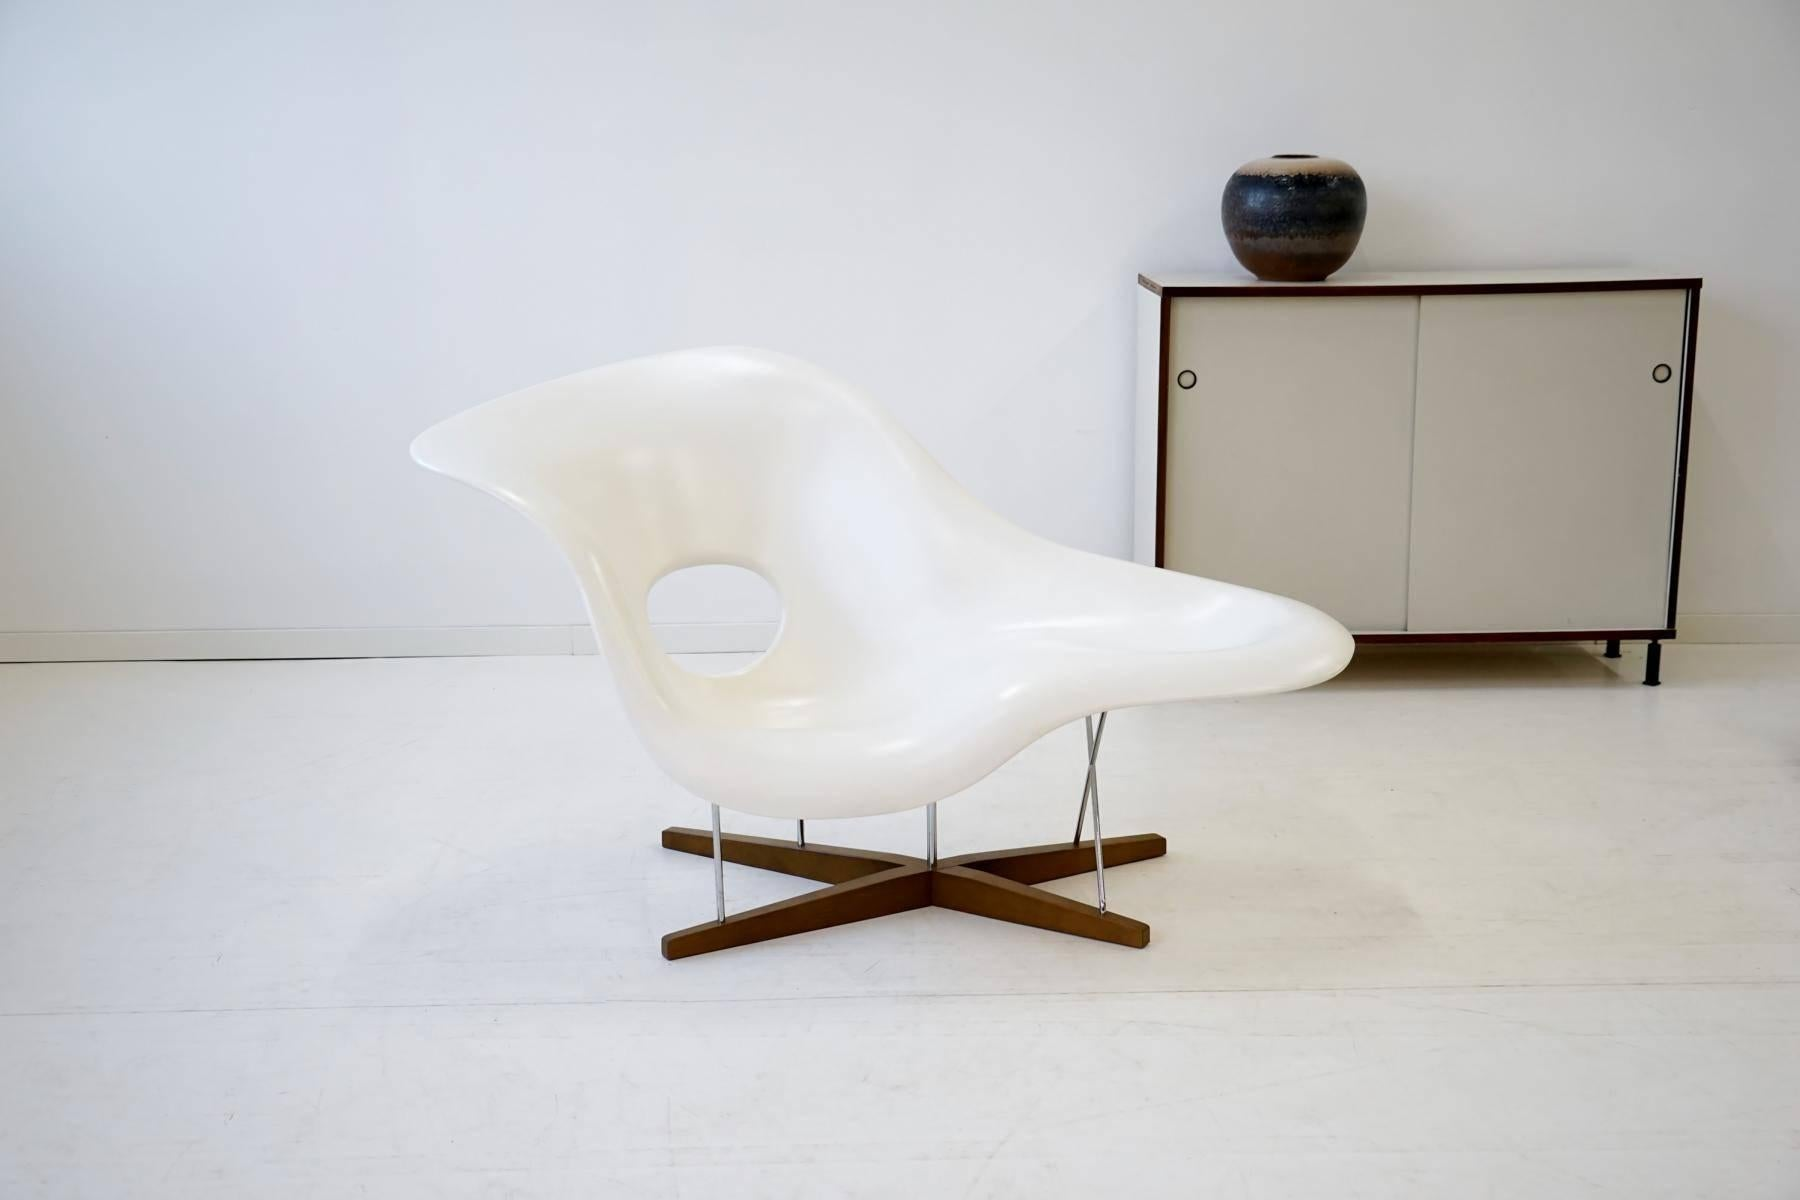 Lounge Liege La Chaise By Eames For Vitra Chaise Lounge Recliner Chair Armchair